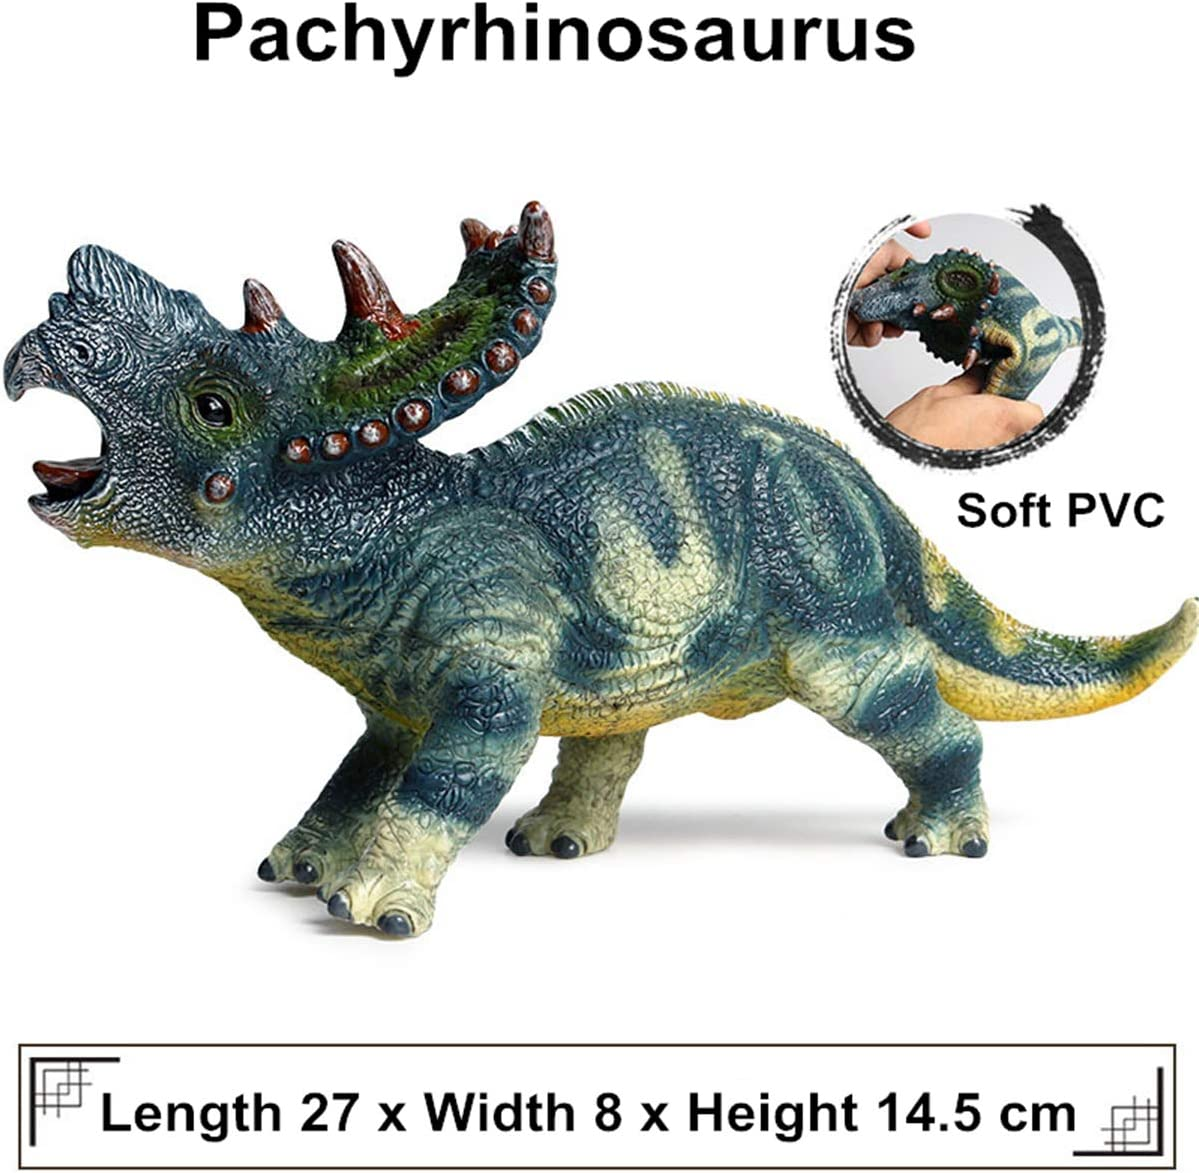 Spinops Jurassic Dinosaur collectors PNSO 1//35 realista 15 cm nuevo